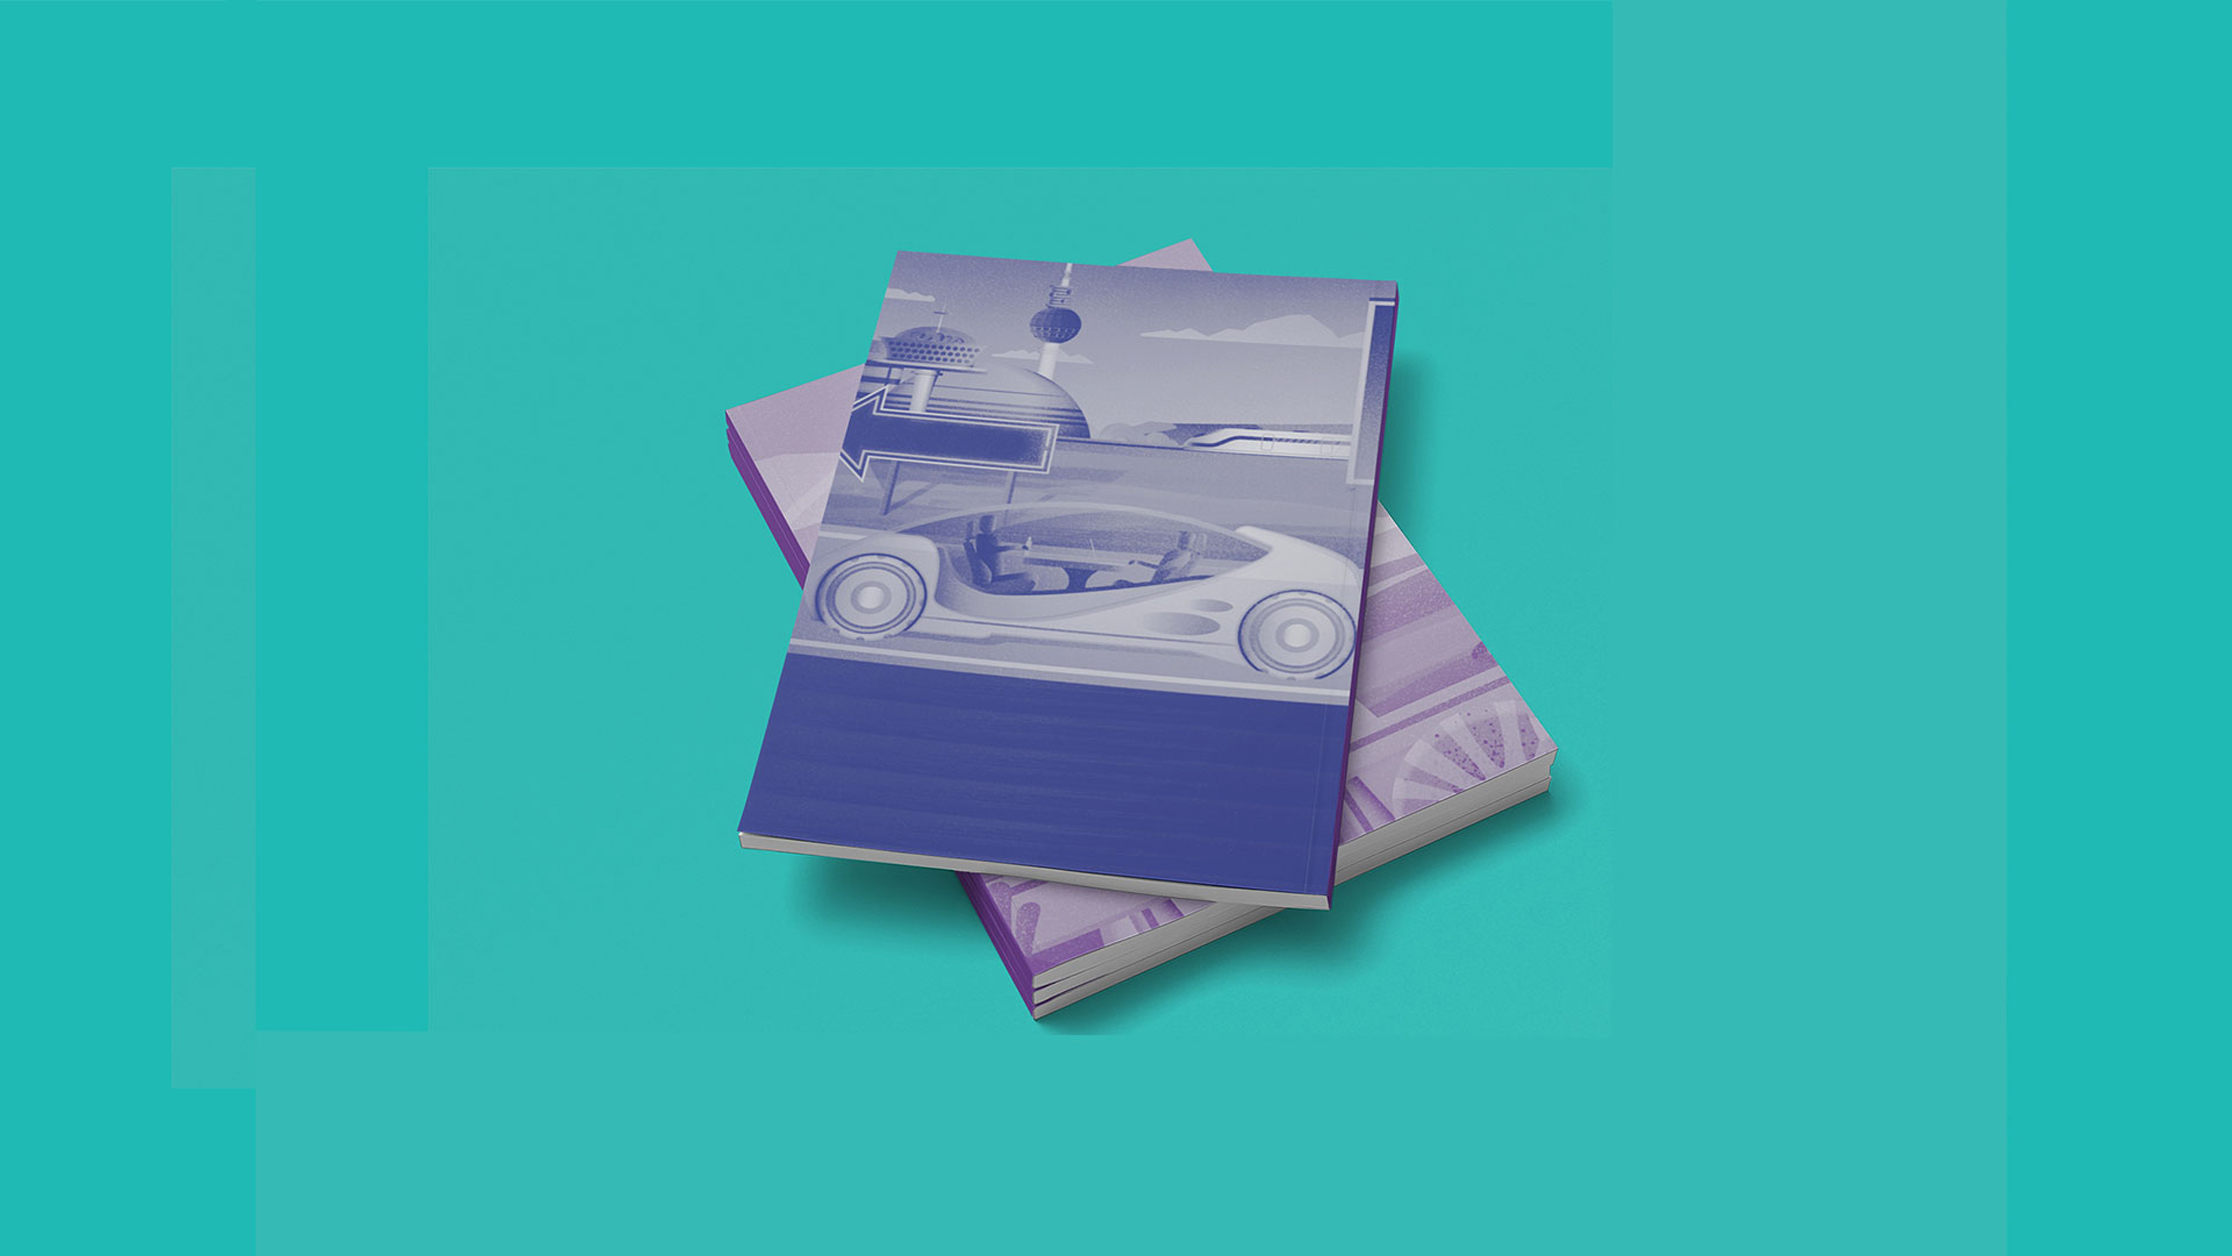 publication cover designs featuring an illustration of  a futuristic car